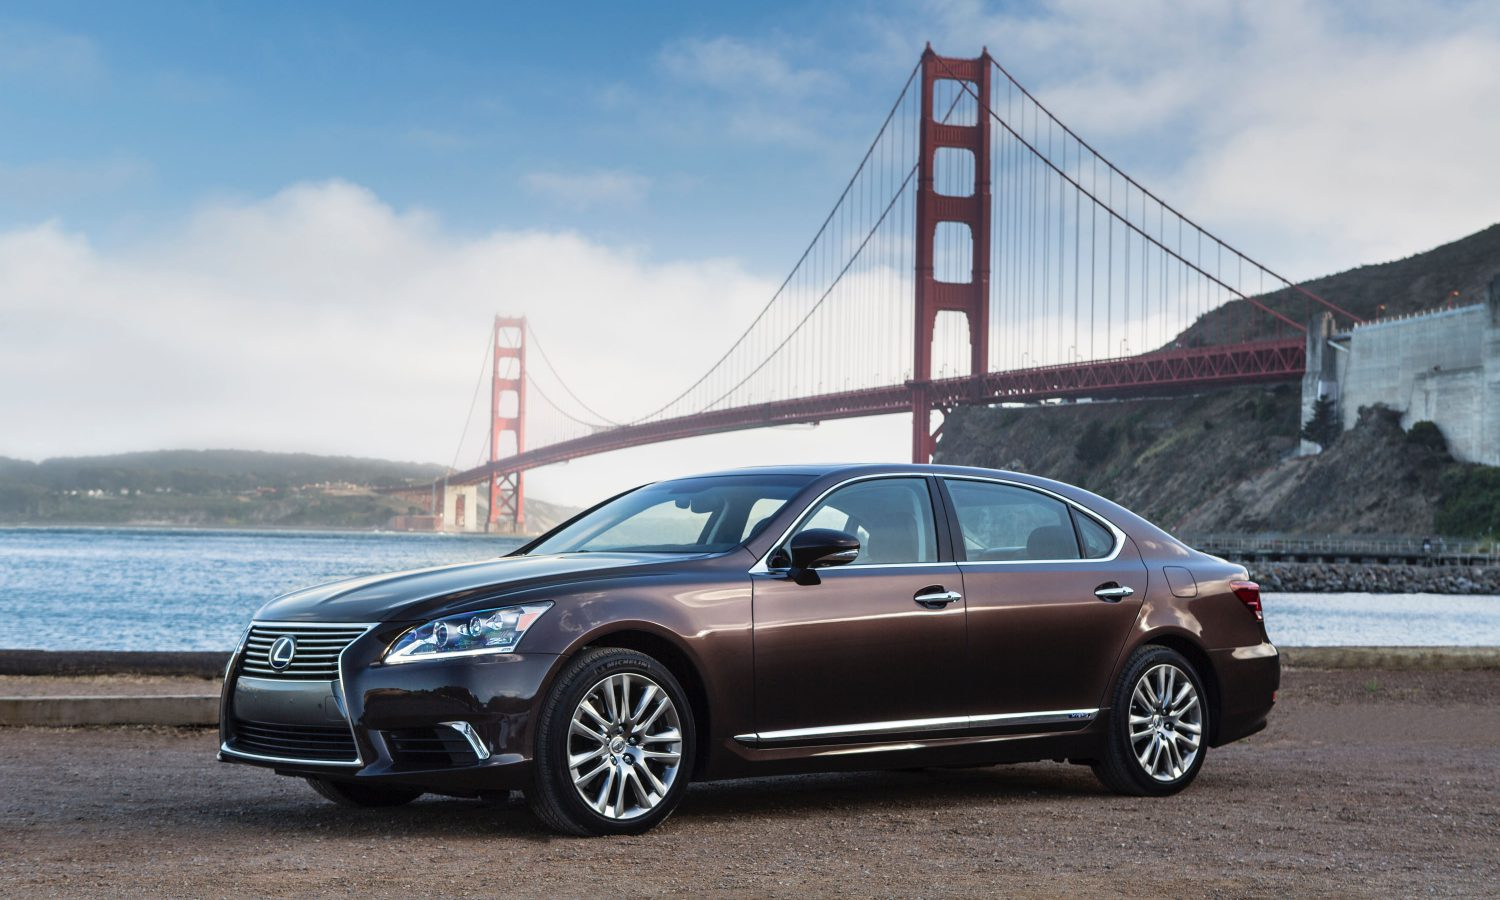 2016 Lexus LS Luxury Flagship Beckons with Indulgent Features, Polished Style, and Smooth Acceleration